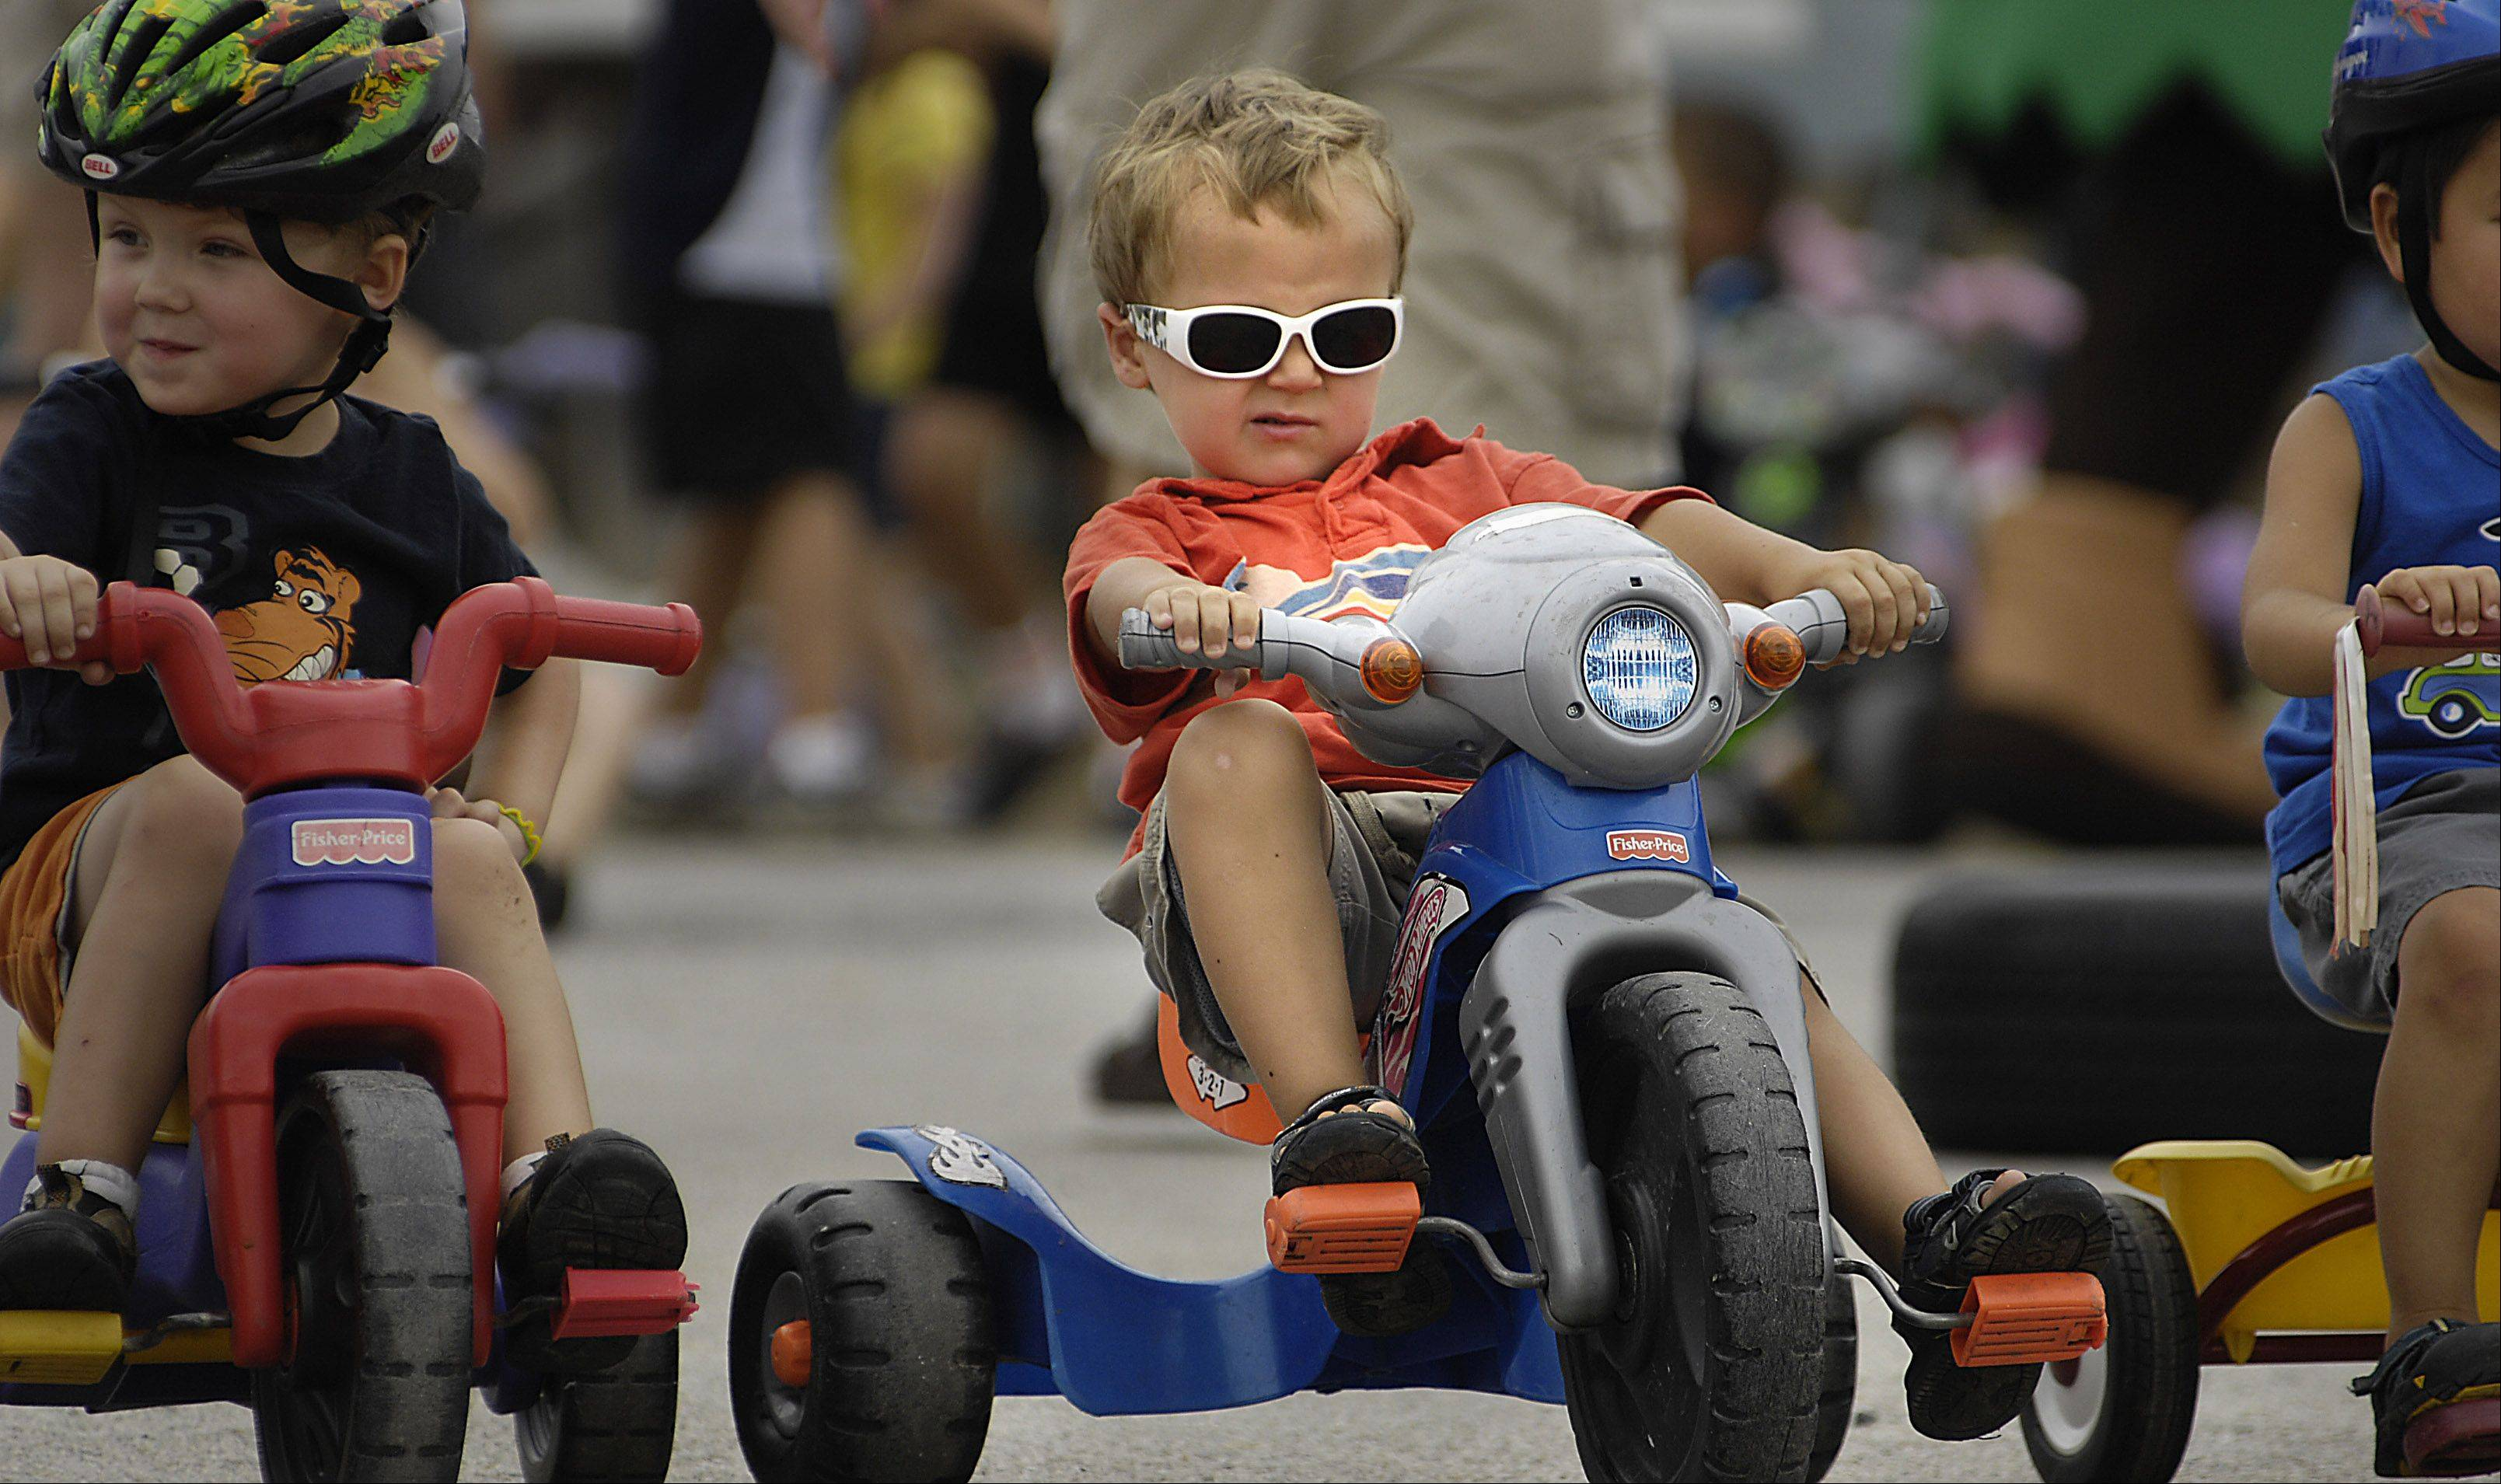 Kyle Vogtmann gets his game face on at the starting line of the 3-year-old Lil' 500 Big Wheel Race during last year's Batavia's Windmill City Festival. His sister Hailey won the 2-year-old race moments earlier. They were with their mother Colleen and are from Aurora.